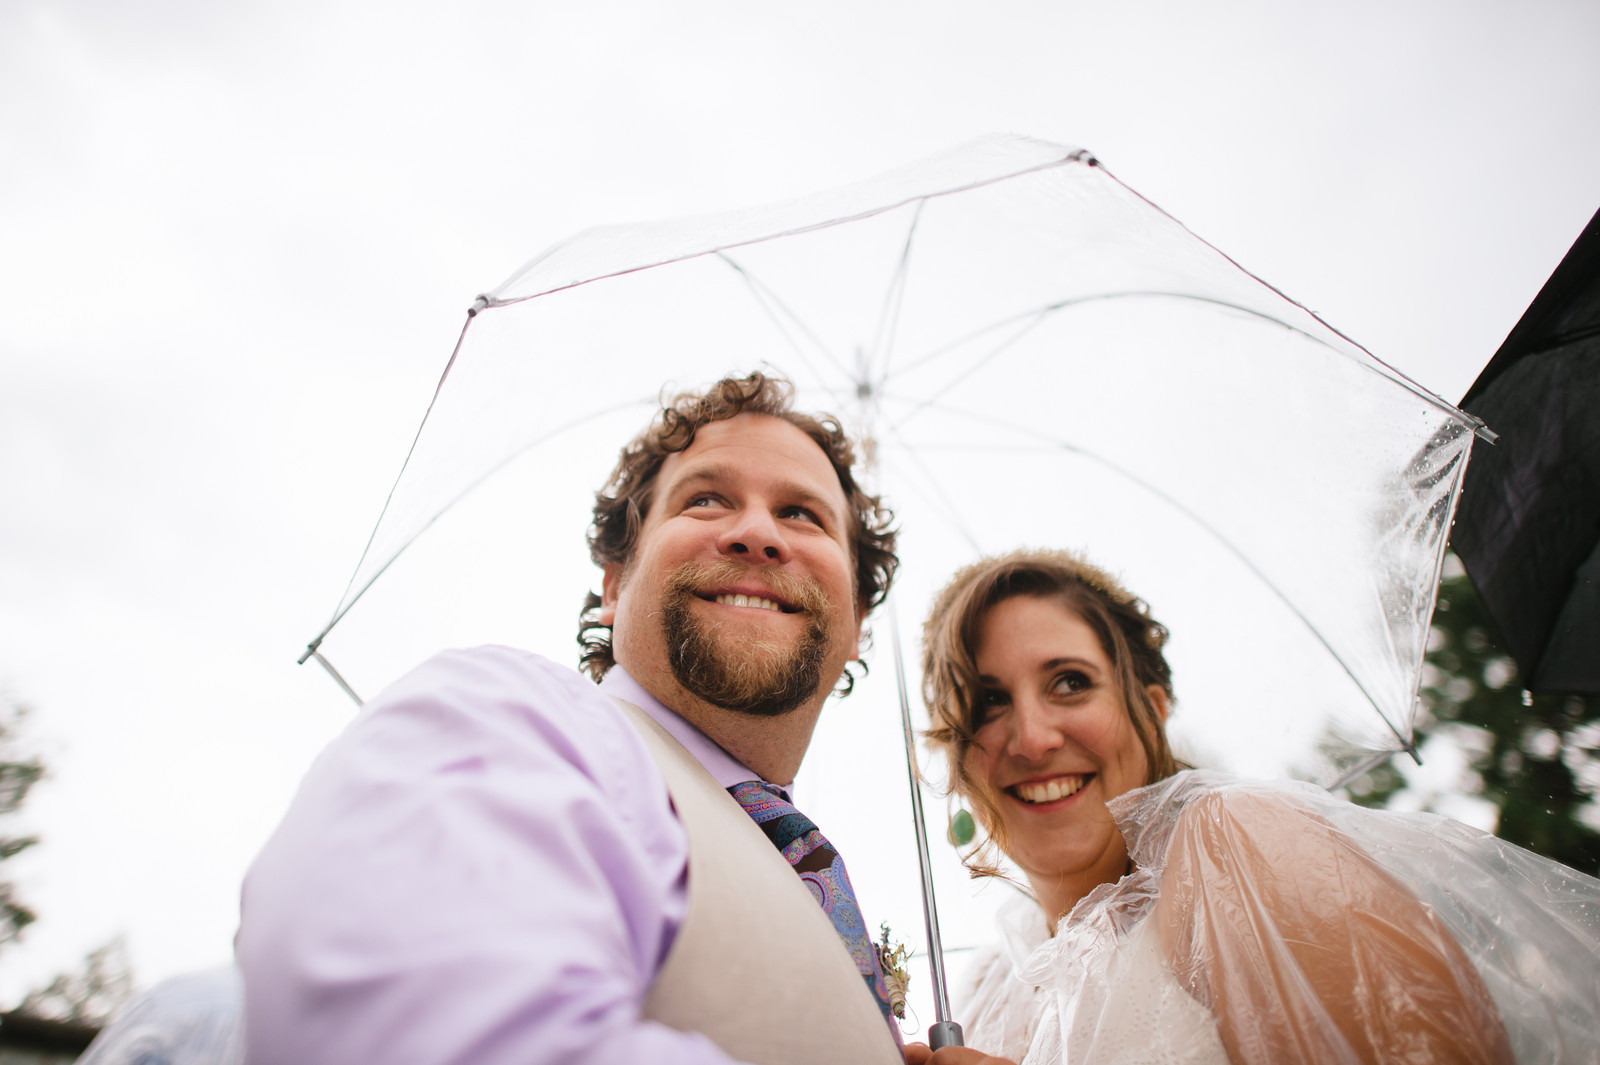 a couple smiling huddling under a wedding umbrella for rain while wearing a clear plastic rain ponchos